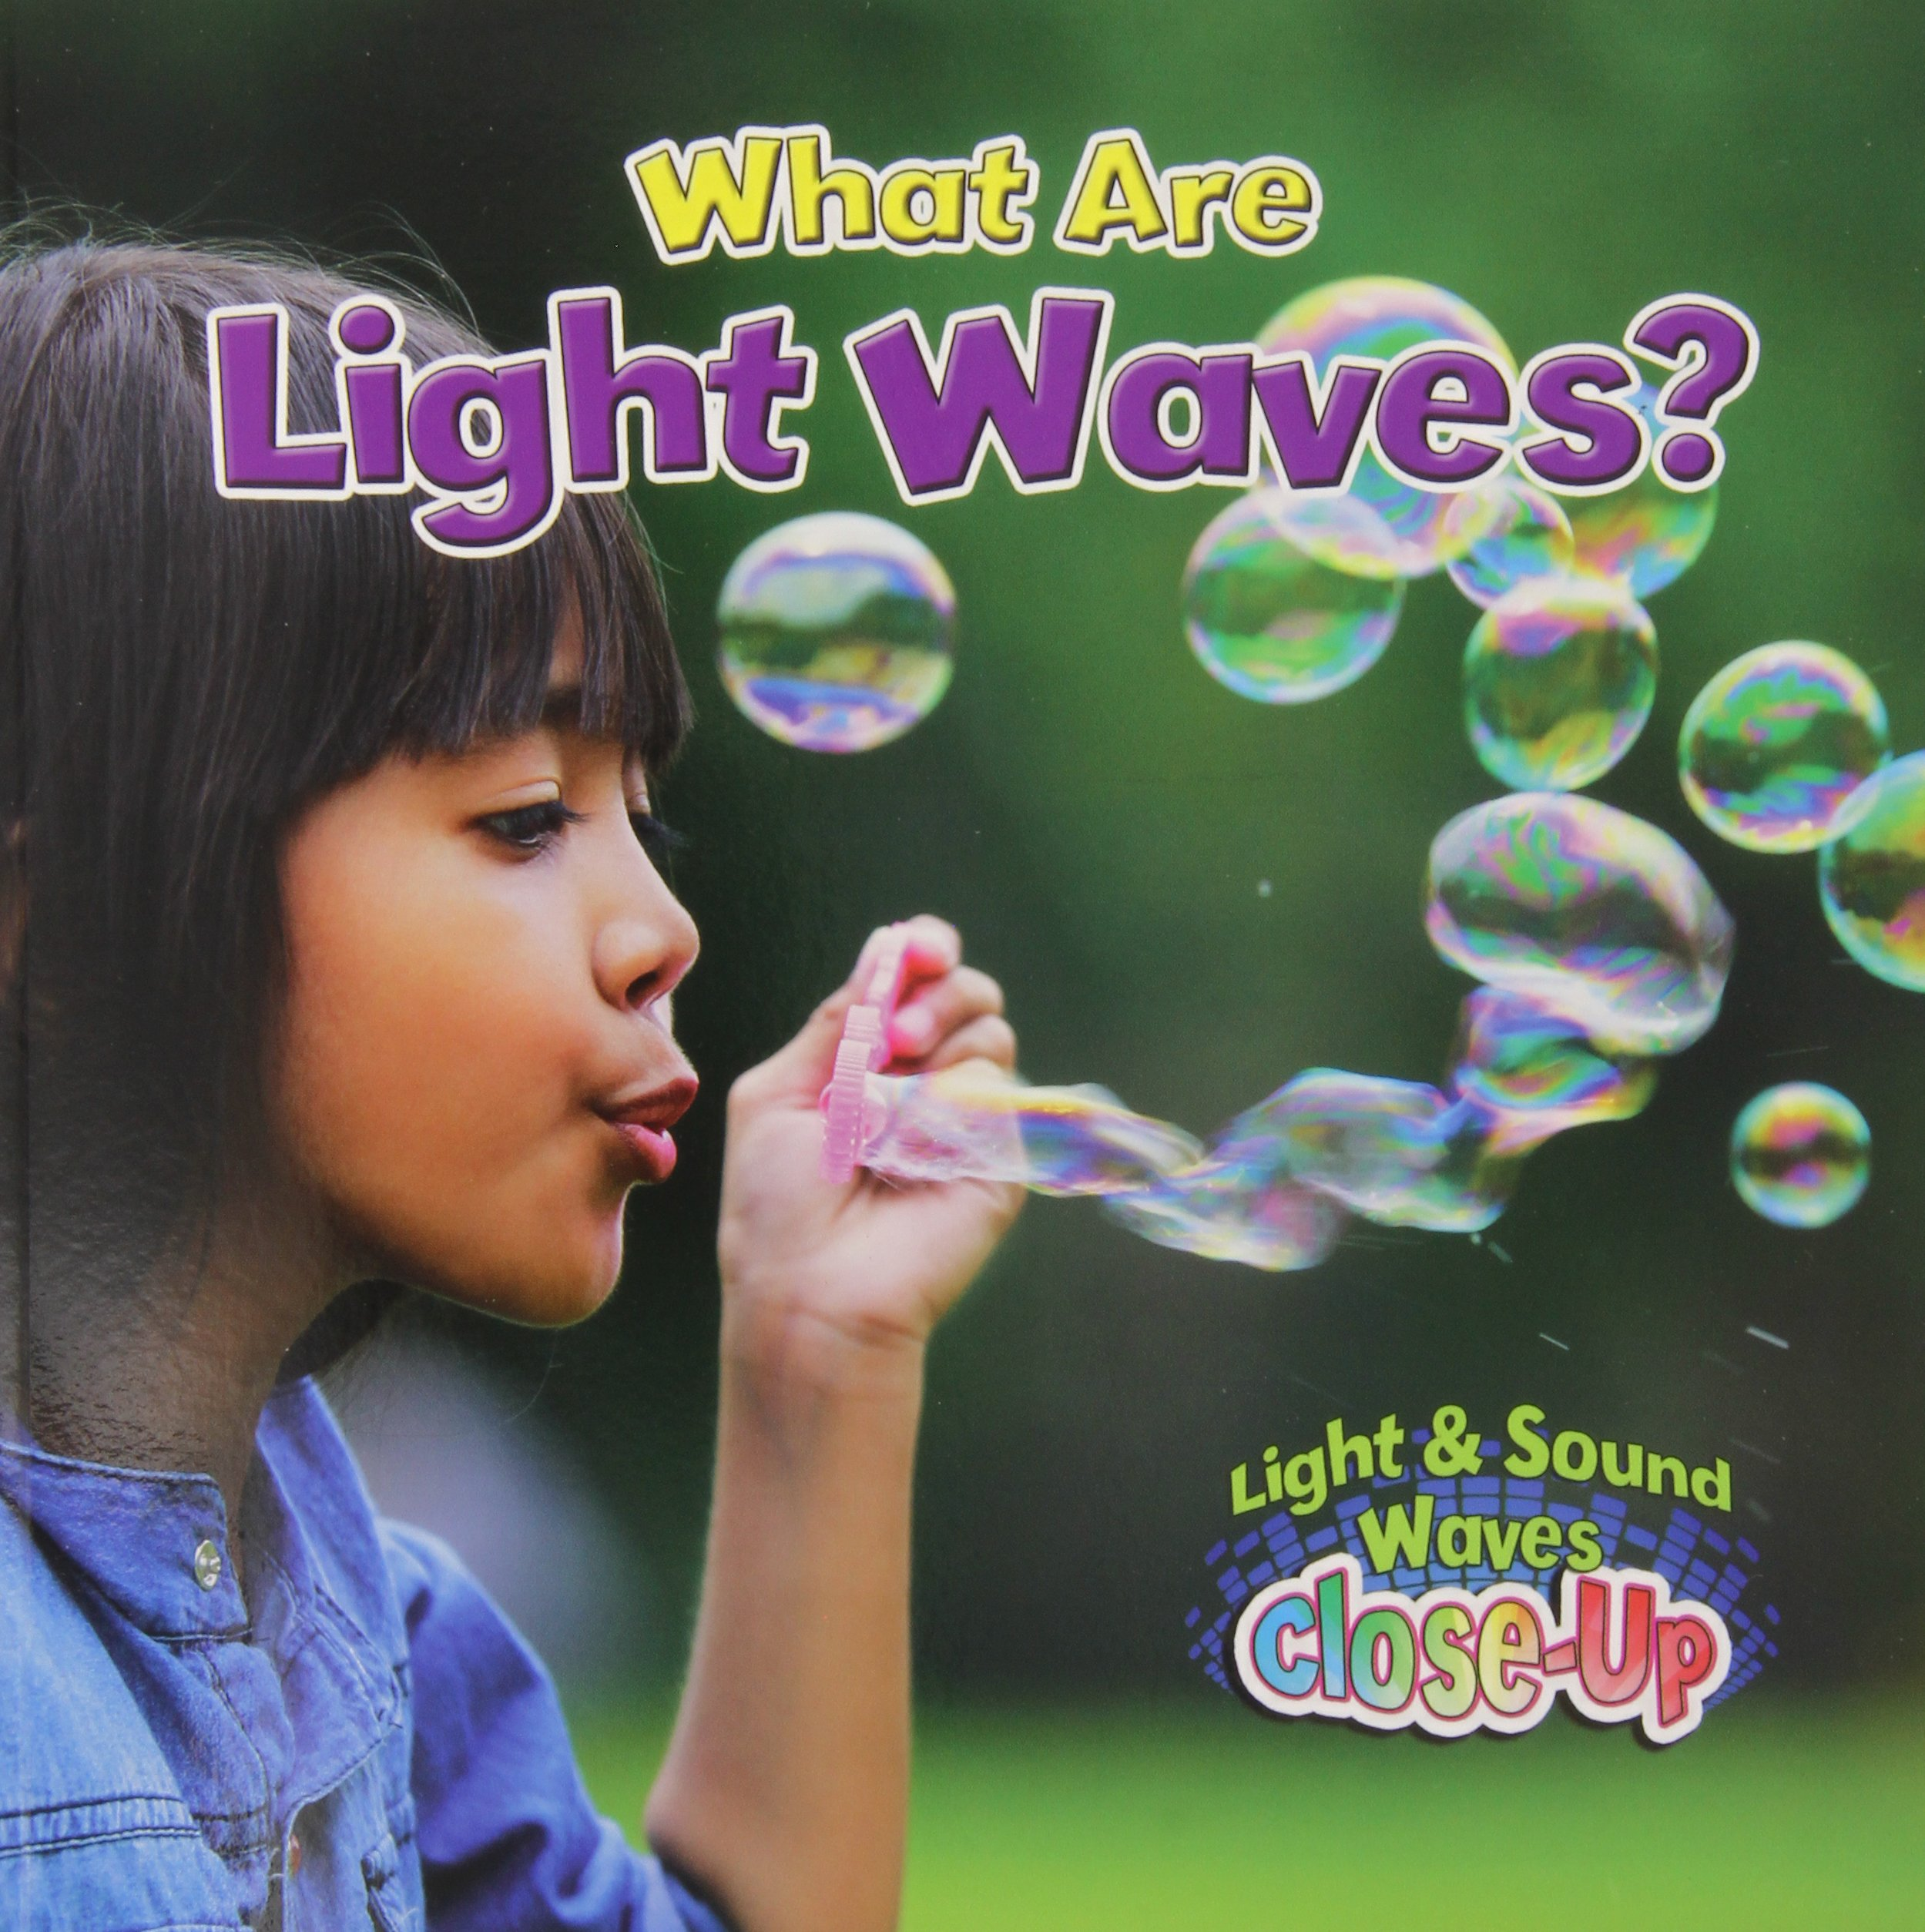 What Are Light Waves? (Light & Sound Waves Close-Up) pdf